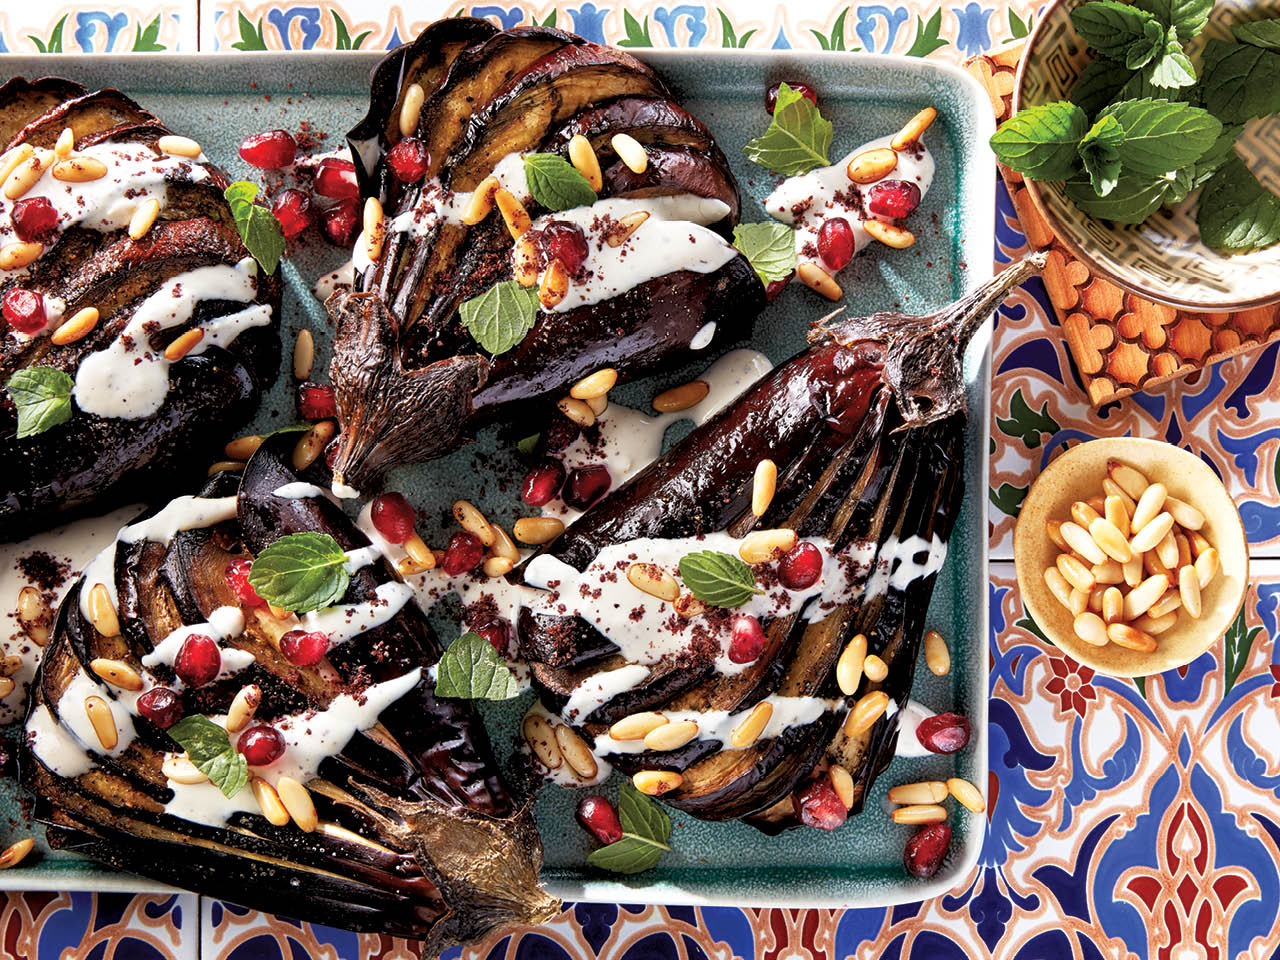 Plate of roasted eggplant drizzled with tahini sauce